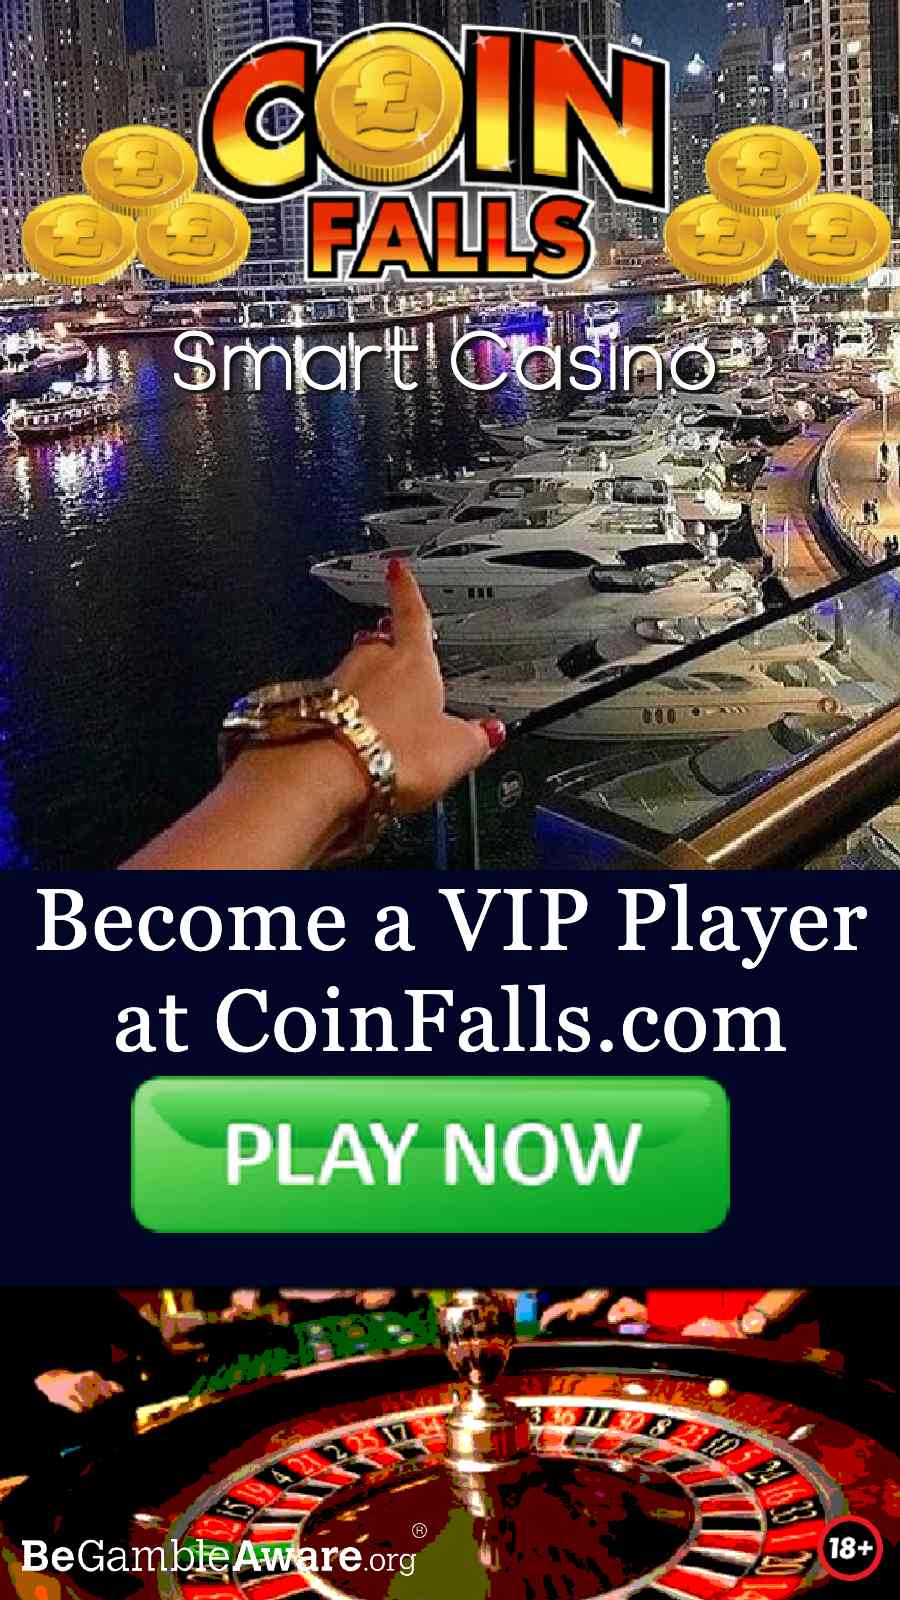 coinfalls mobile casino online